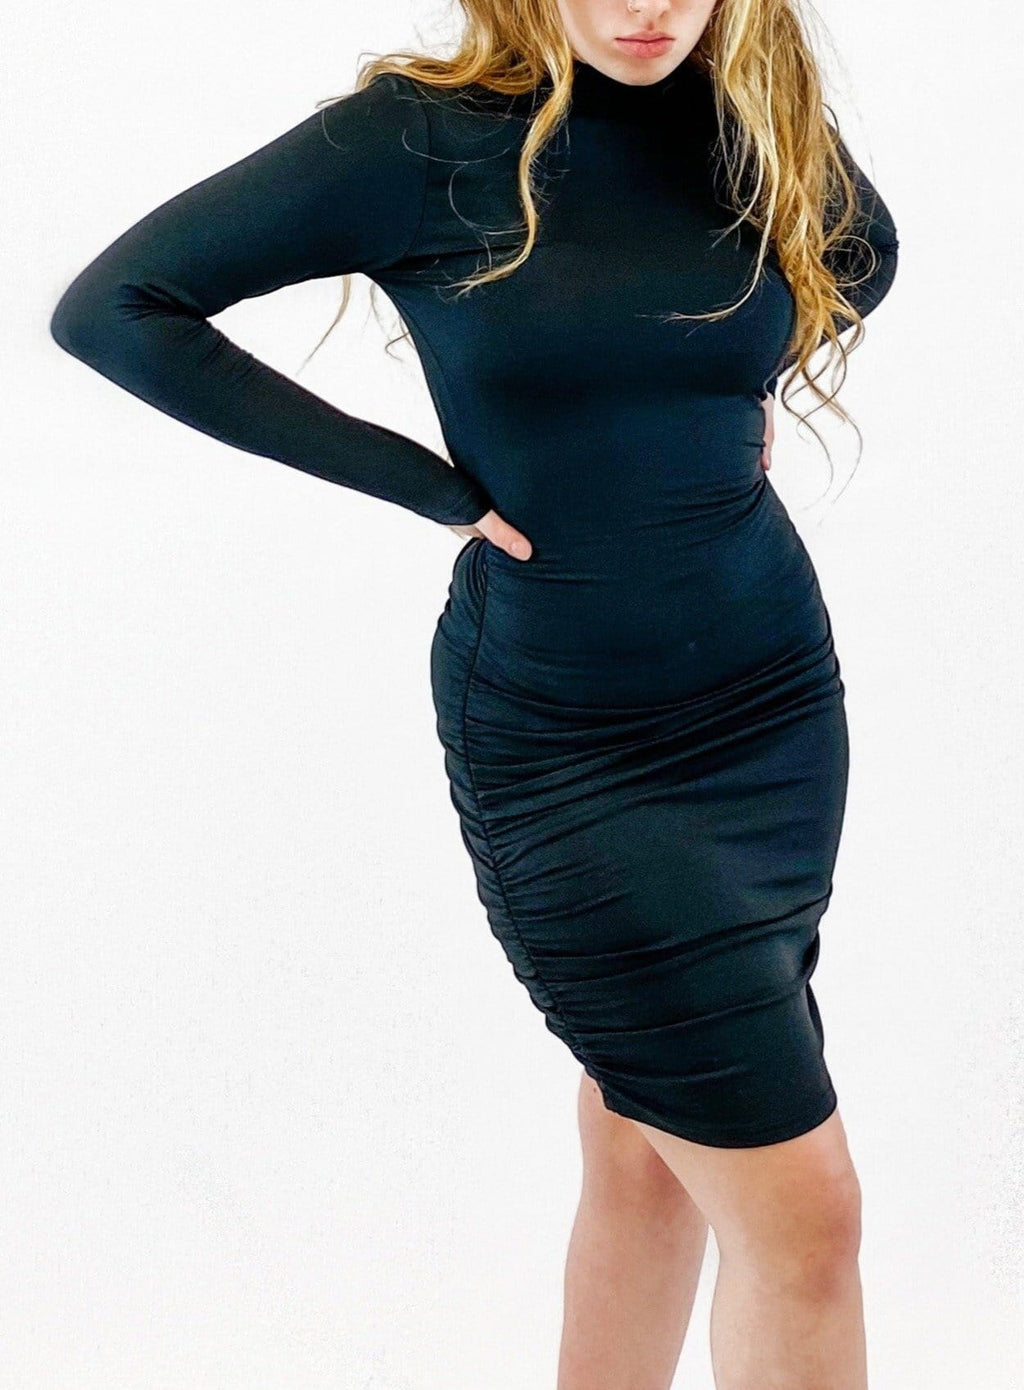 Ruched Bottom Dress - Black - bigcityboutique